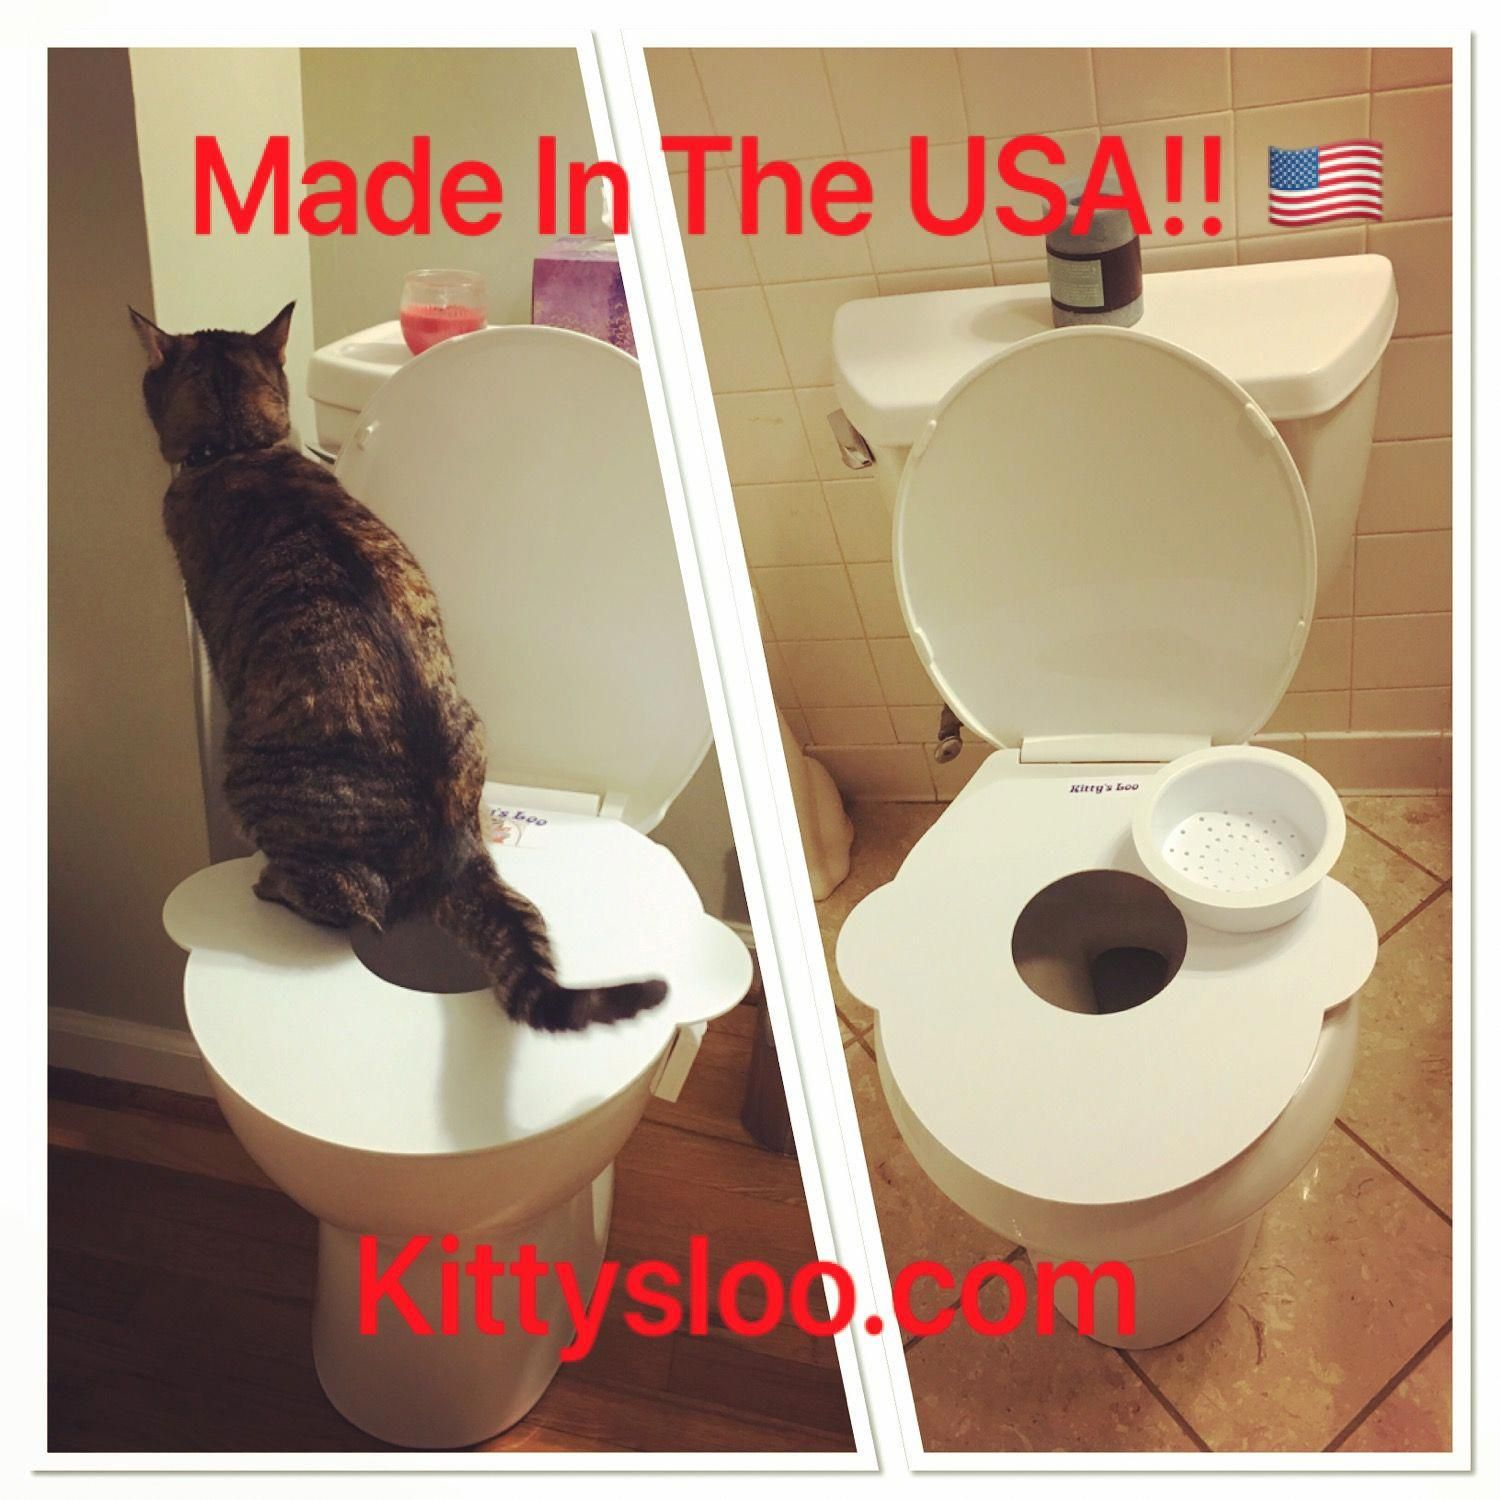 It S Time To Get Rid Of The Litter Box Buy Now And Save Now Cats Bathroomideas Kittens Kittysloo Tinyhouse Cat Cat Toilet Training Cat Patio Indoor Cat